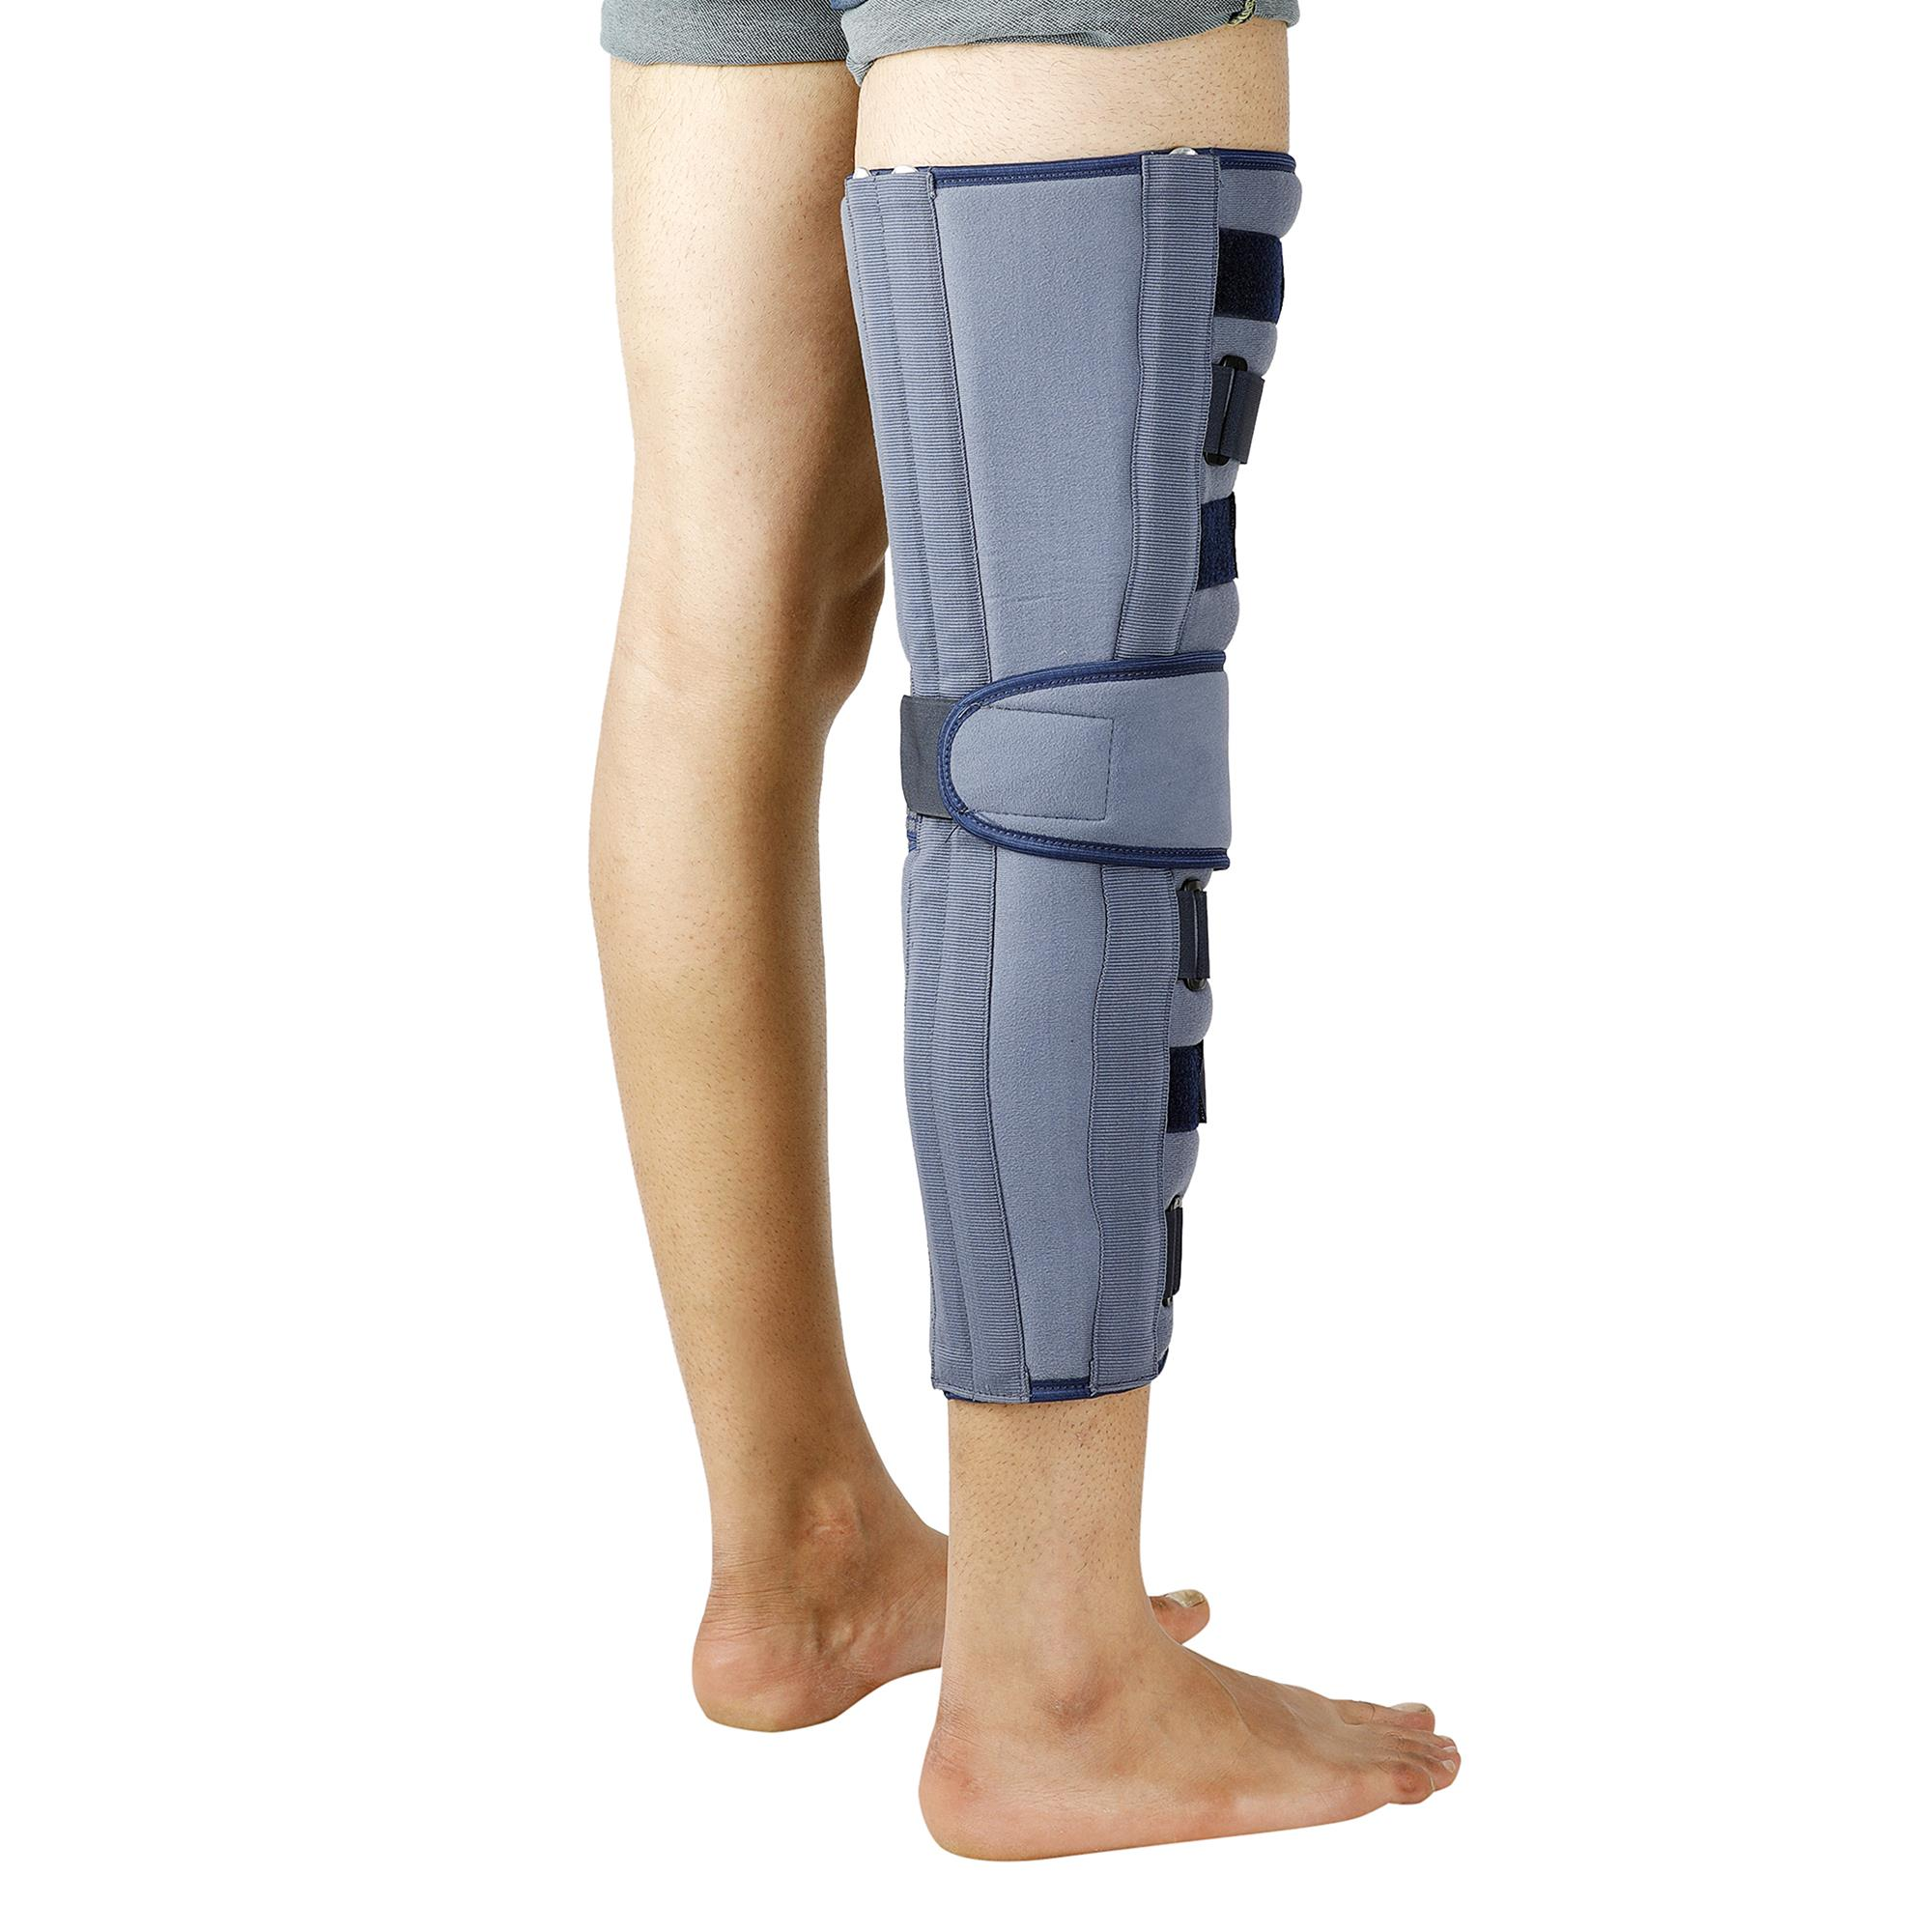 """Lifeshield Knee Immobilizer 22"""": Used For Restricting Leg & Knee Movement After Surgery Or Injury (X Large)"""